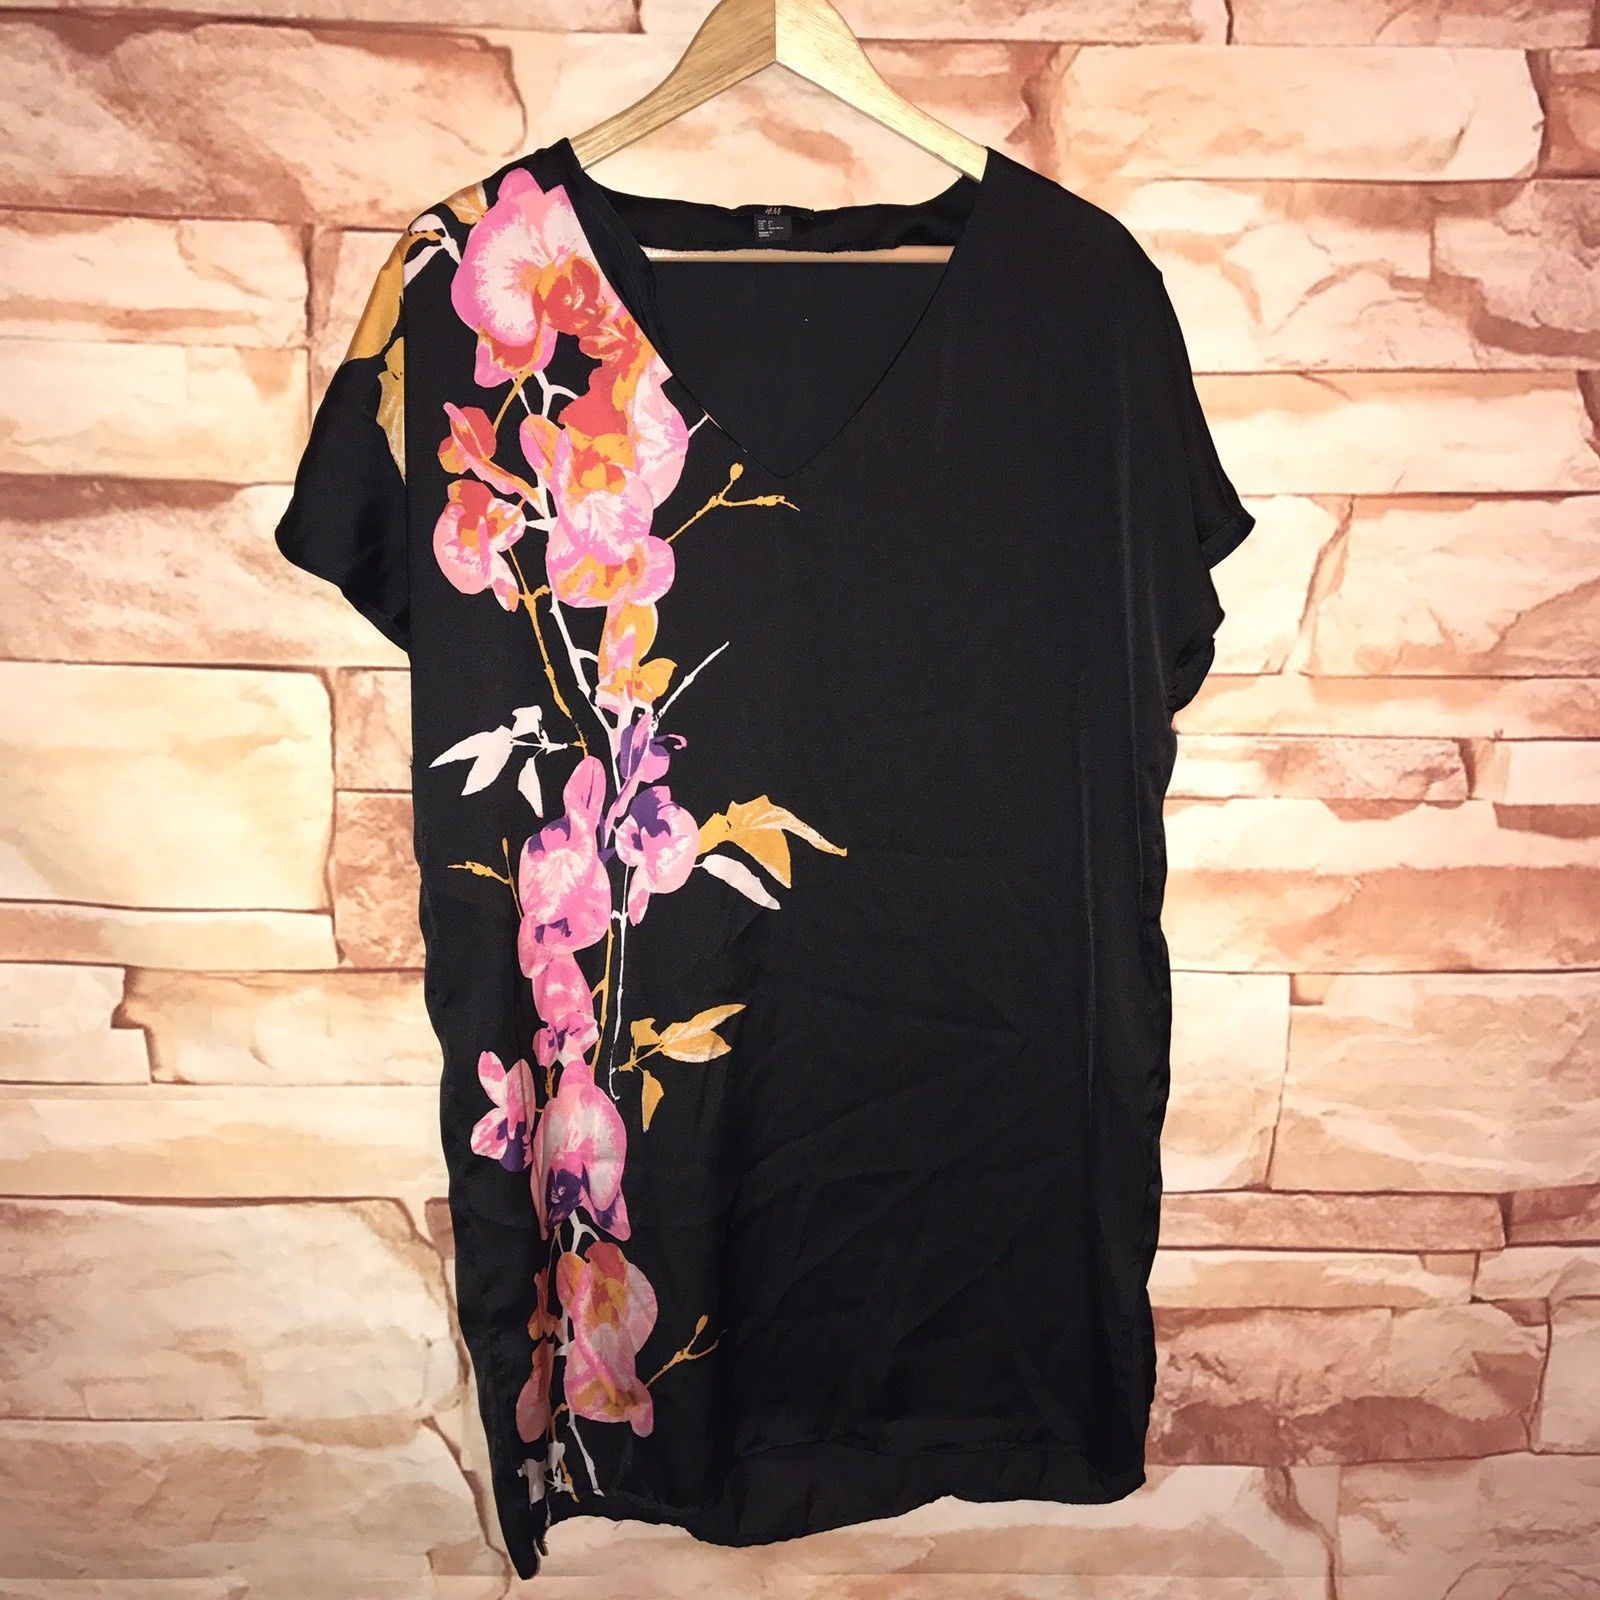 Pink dress shirt for women  Awesome Great H u M Womens  Dress Classic Black pink floral v neck